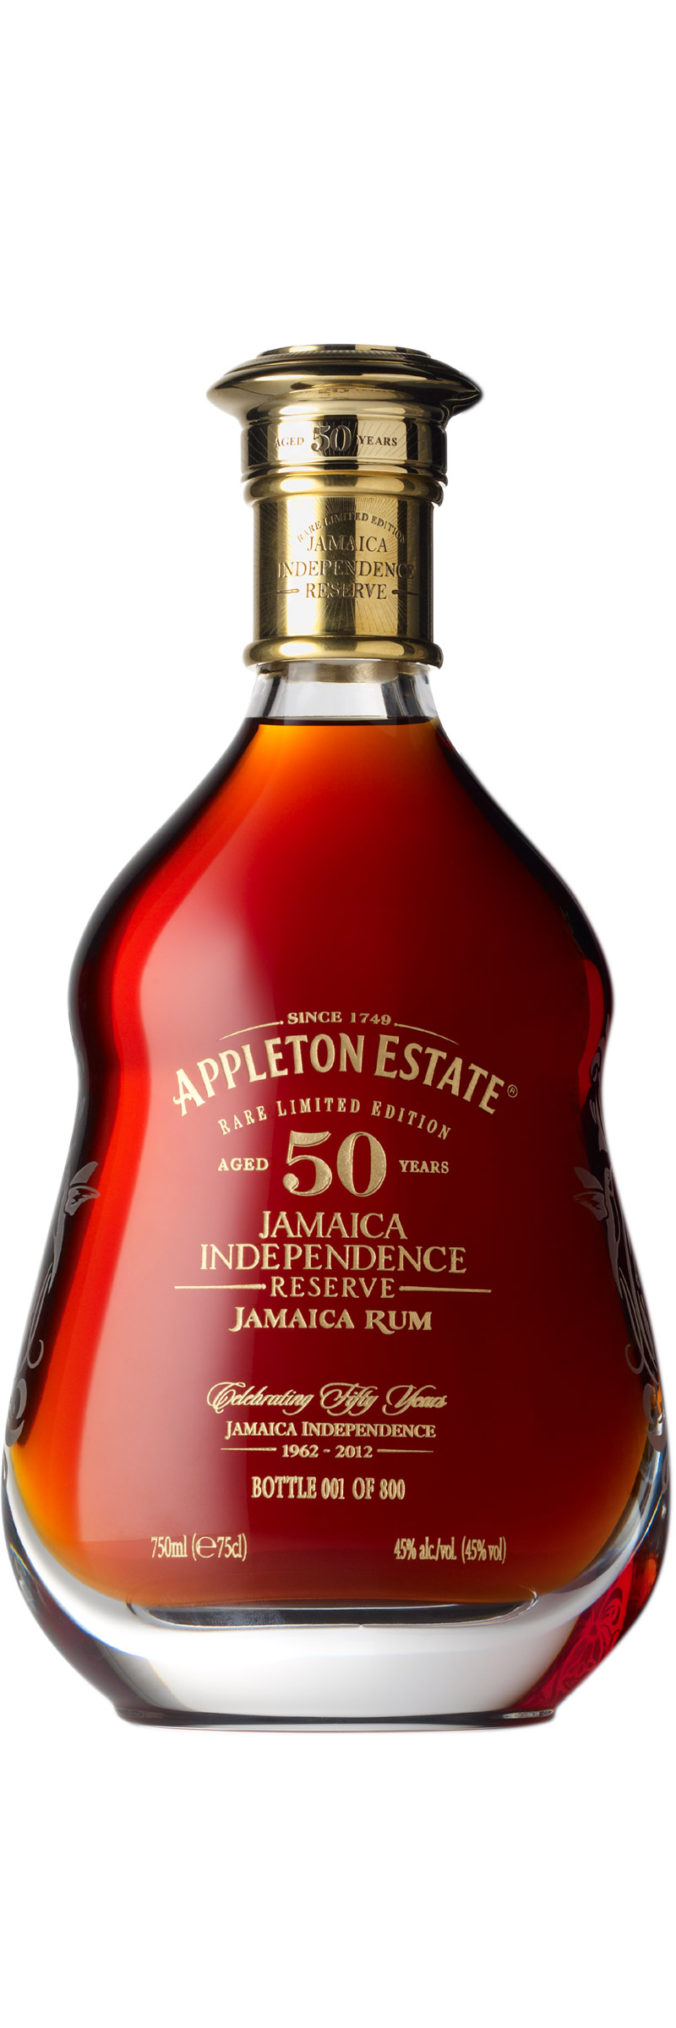 Appleton Estate Rare Limited Edition 50 year old Jamaica Independence Reserve aged rum